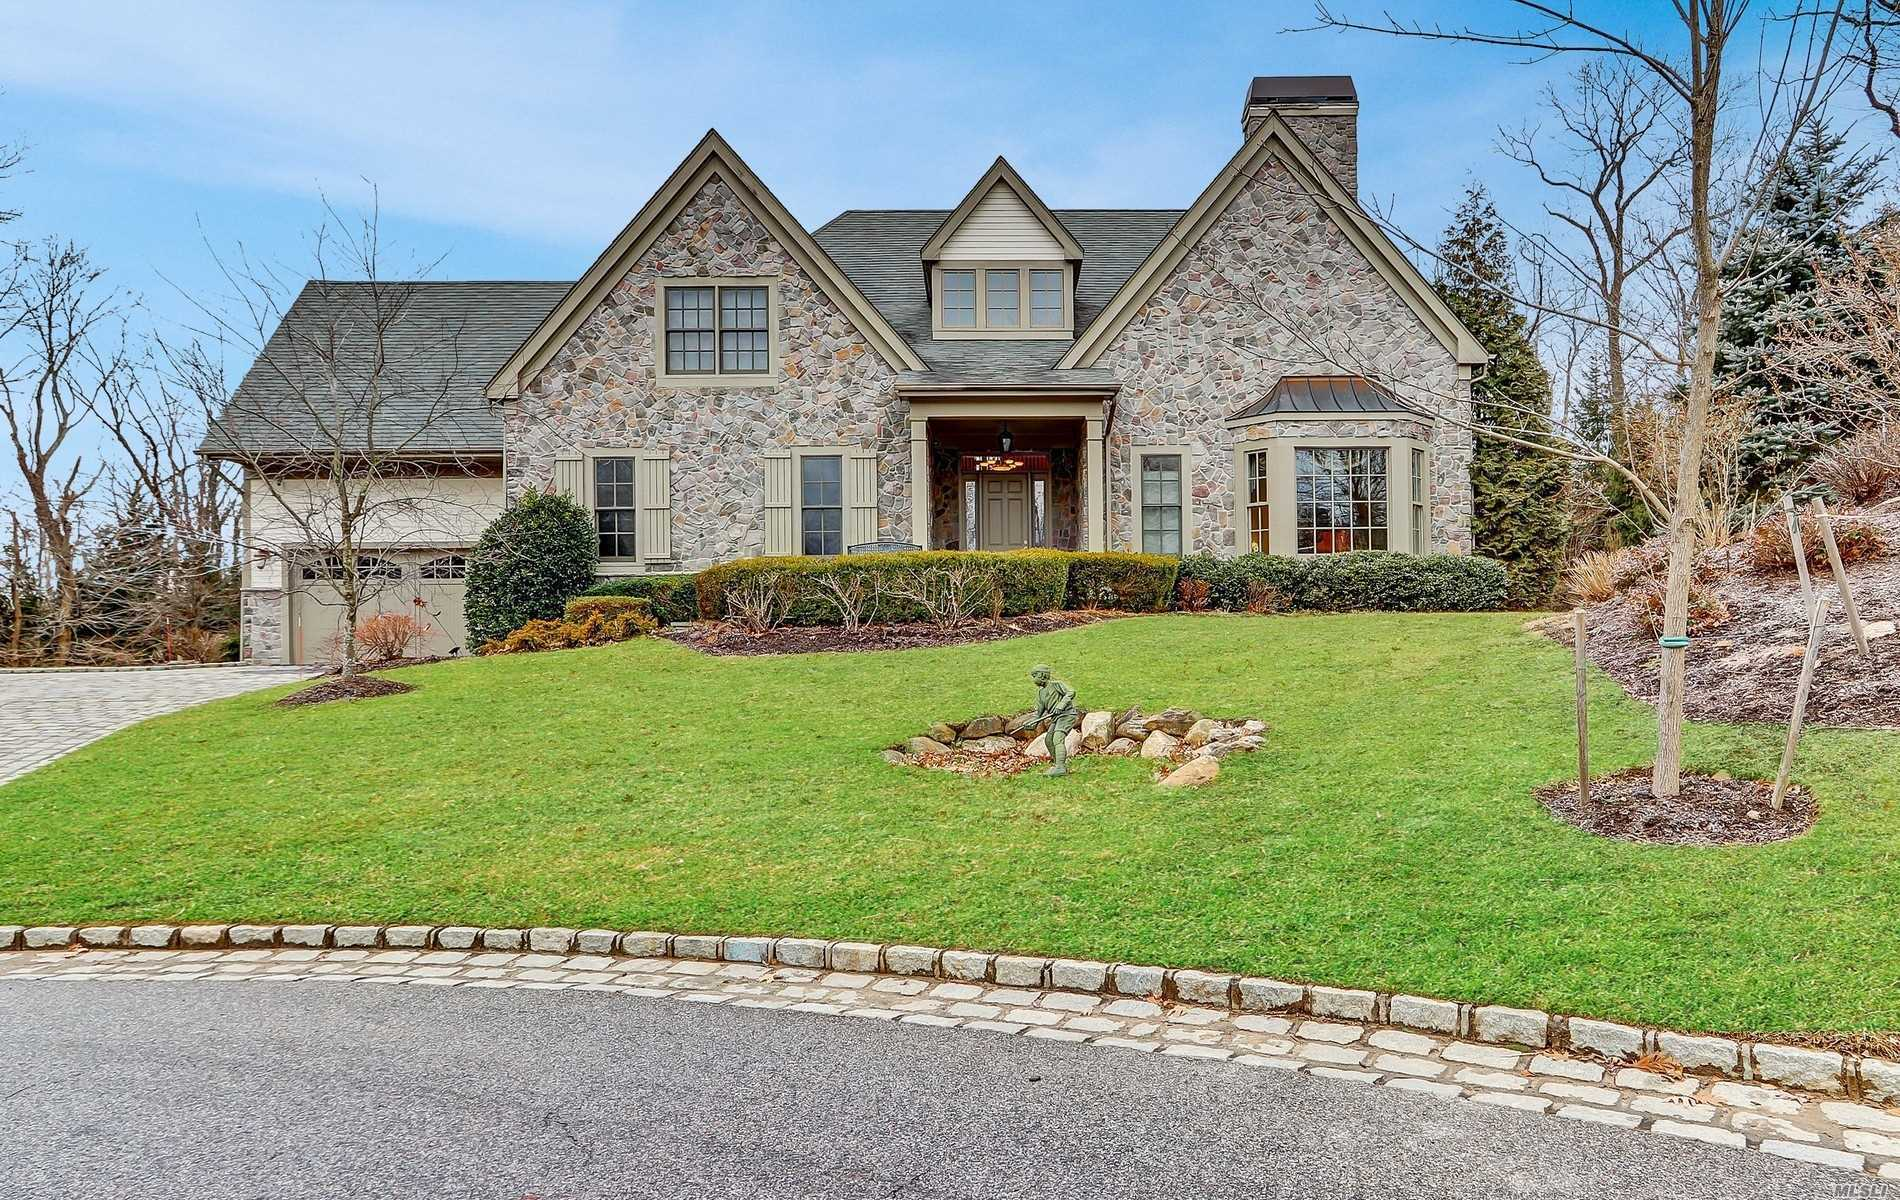 Best Value In Stone Hill Muttontown. Fabulous Better Than New Stone And Stucco Colonial. A Grand Entry, Bridal Staircase, Open Light Bright And Airy Floor Plan, Master Suit With His/Her Baths & Separate Sitting Room.A Finished Walk Out Lower Level With Home Theater And Beautiful Flat Usable Property